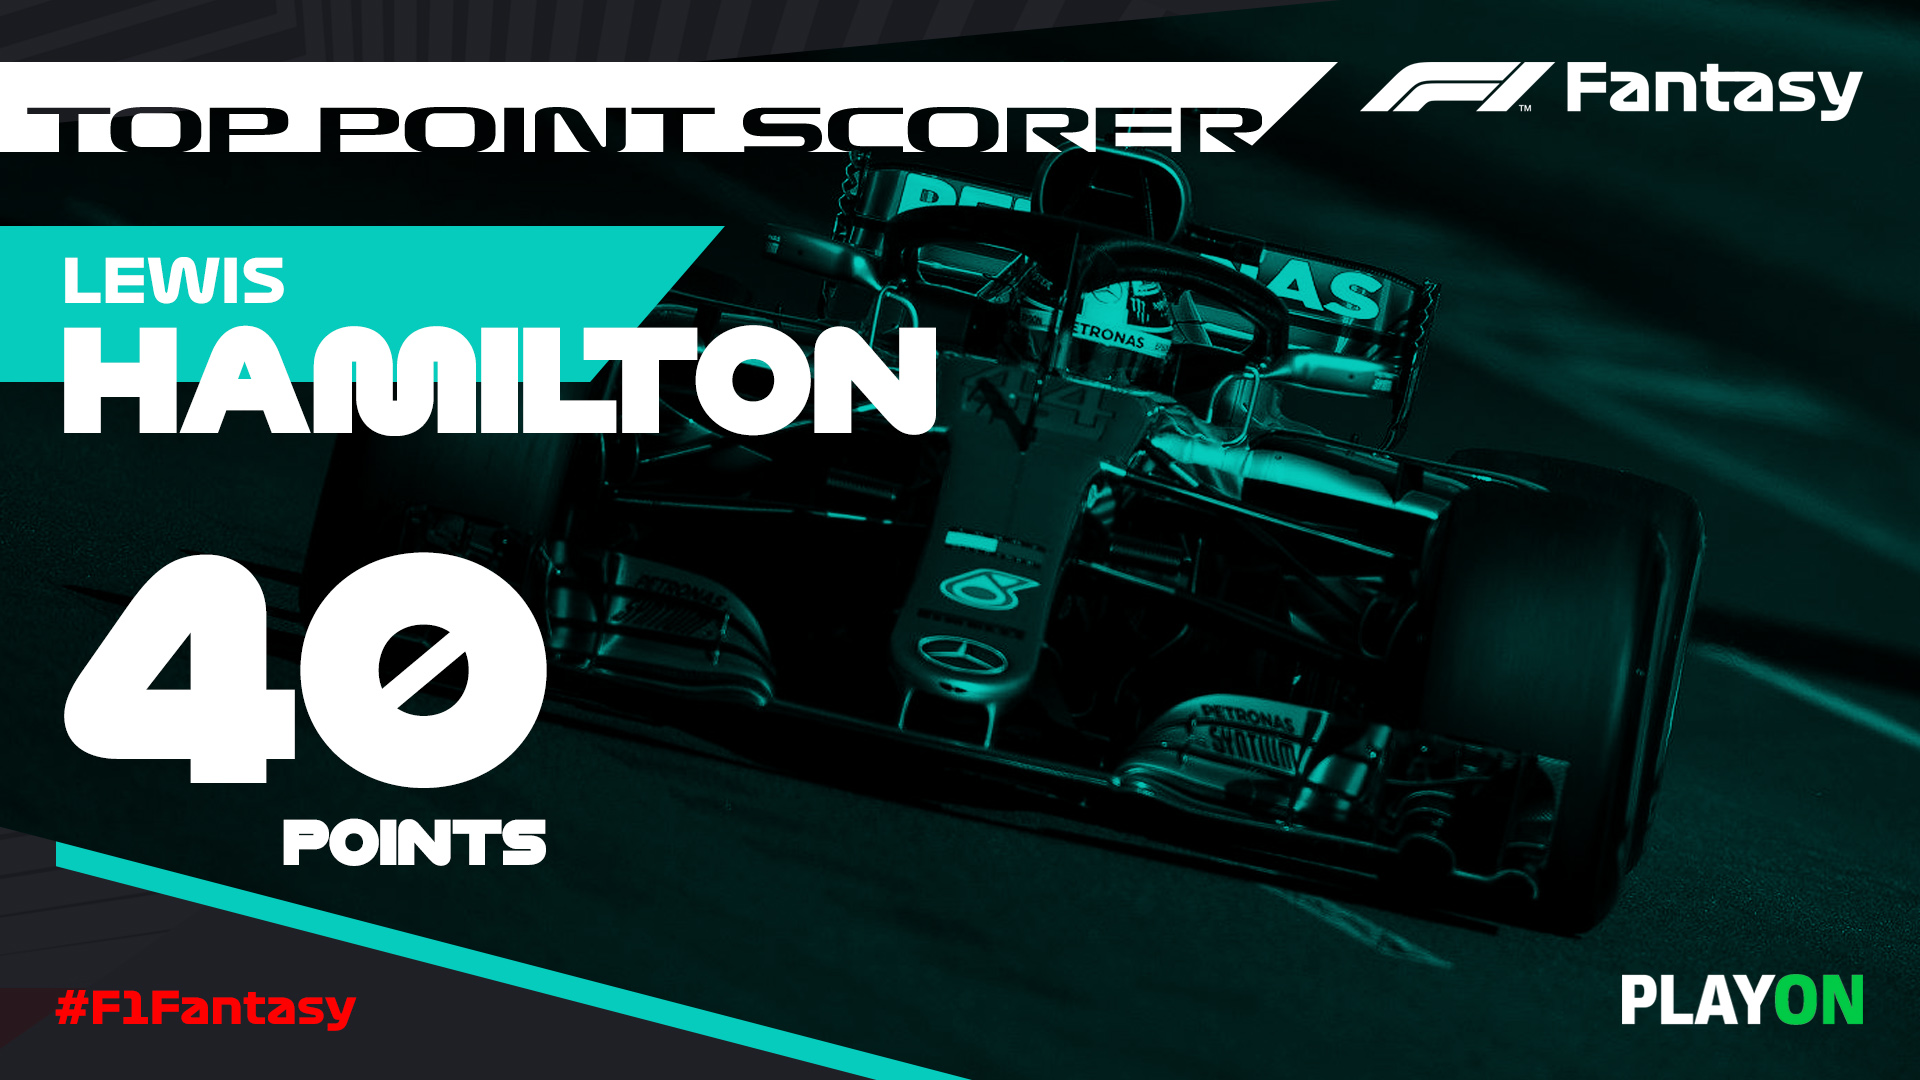 F1 Fantasy Top Point Scorer 1920x1080 Hamilton